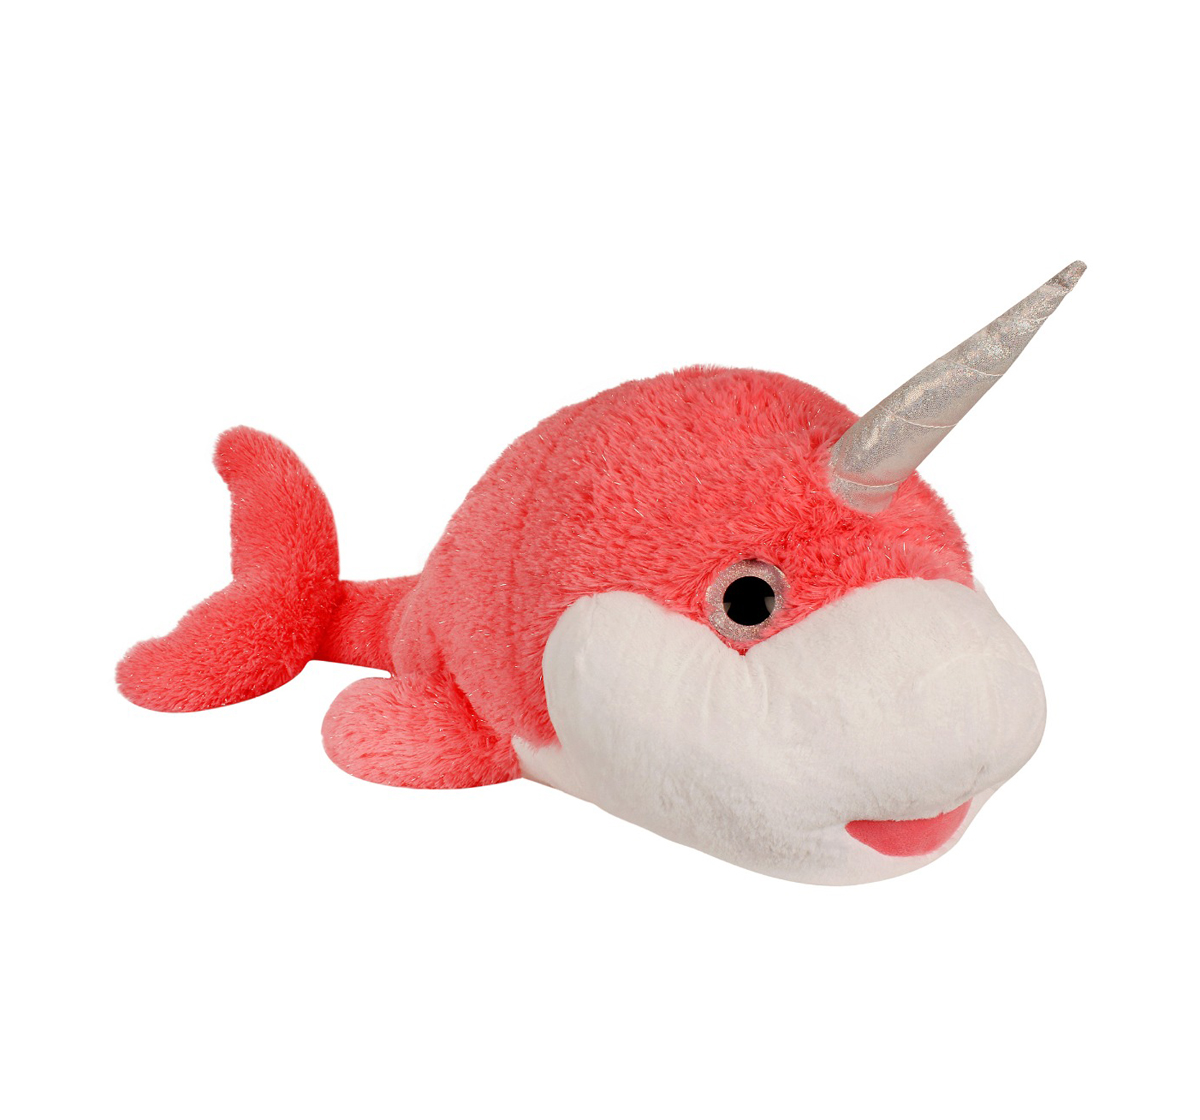 Fuzzbuzz | Fuzzbuzz The Narwhal Plush - Pink - 105Cm Quirky Soft Toys for Kids age 12M+ - 40 Cm (Pink)